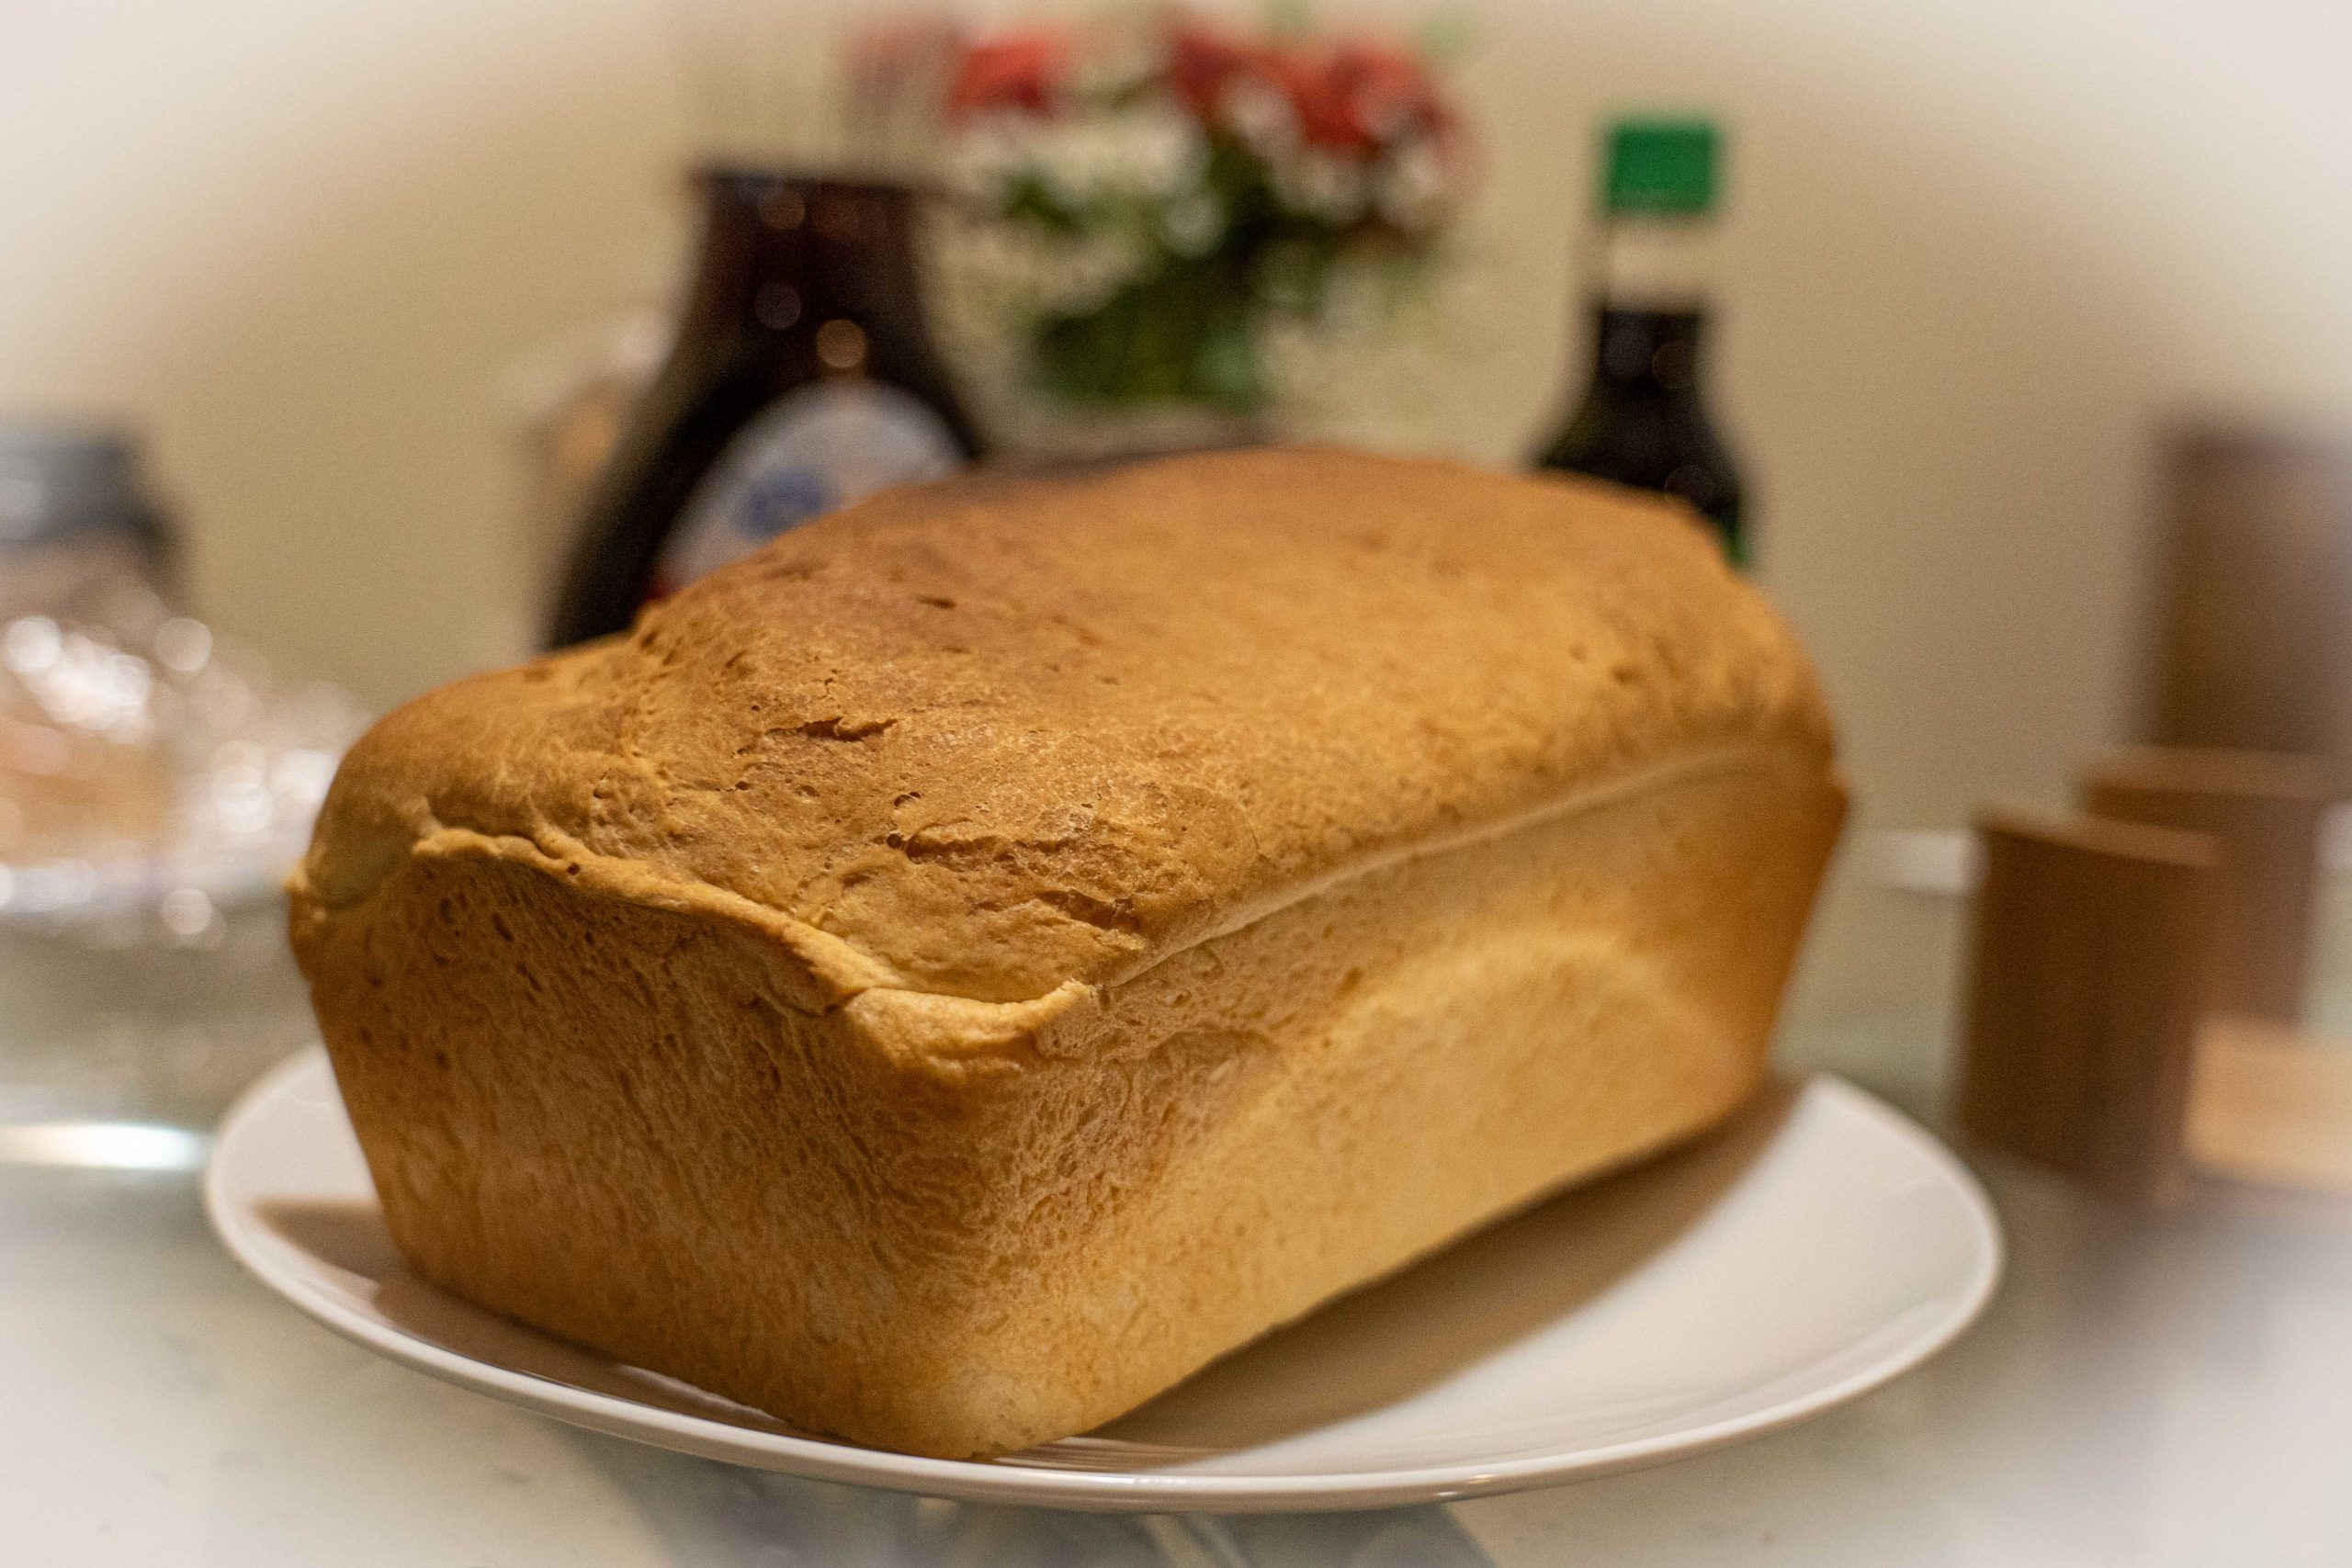 A freshly baked loaf of homemade bread